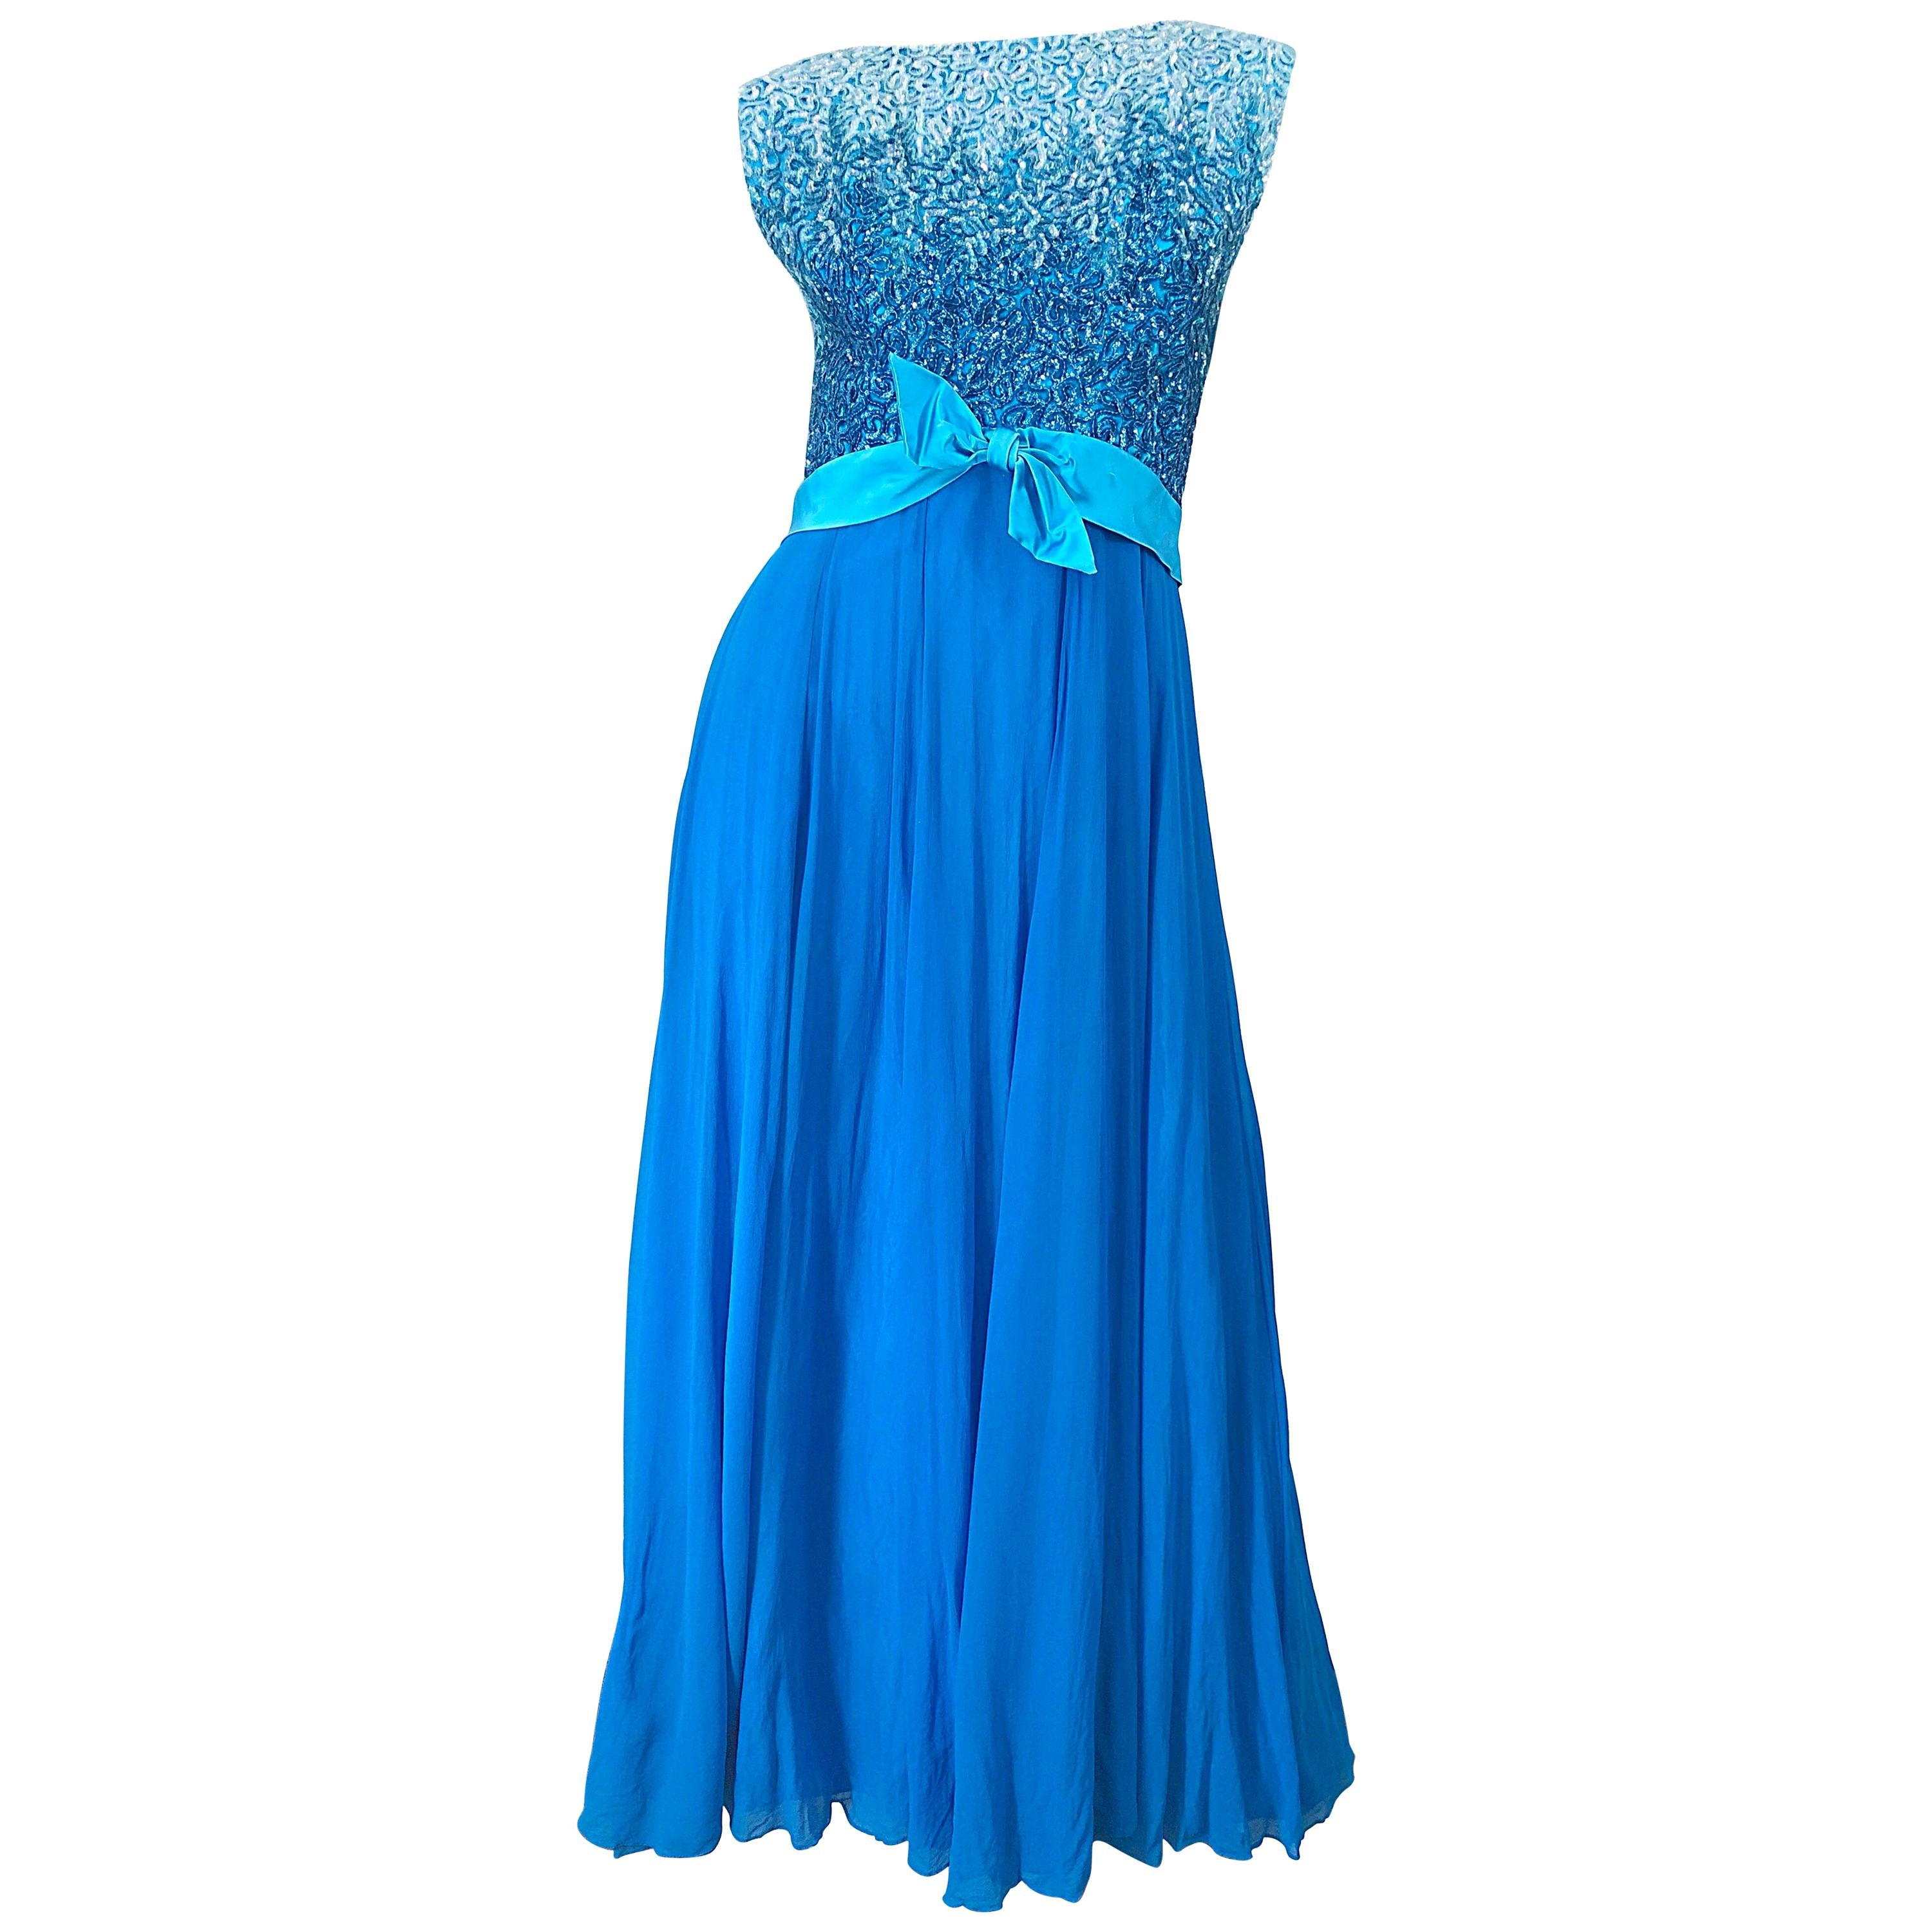 1950s Emma Domb Turquoise Blue Ombre Sequined Silk Chiffon Vintage 50s Gown